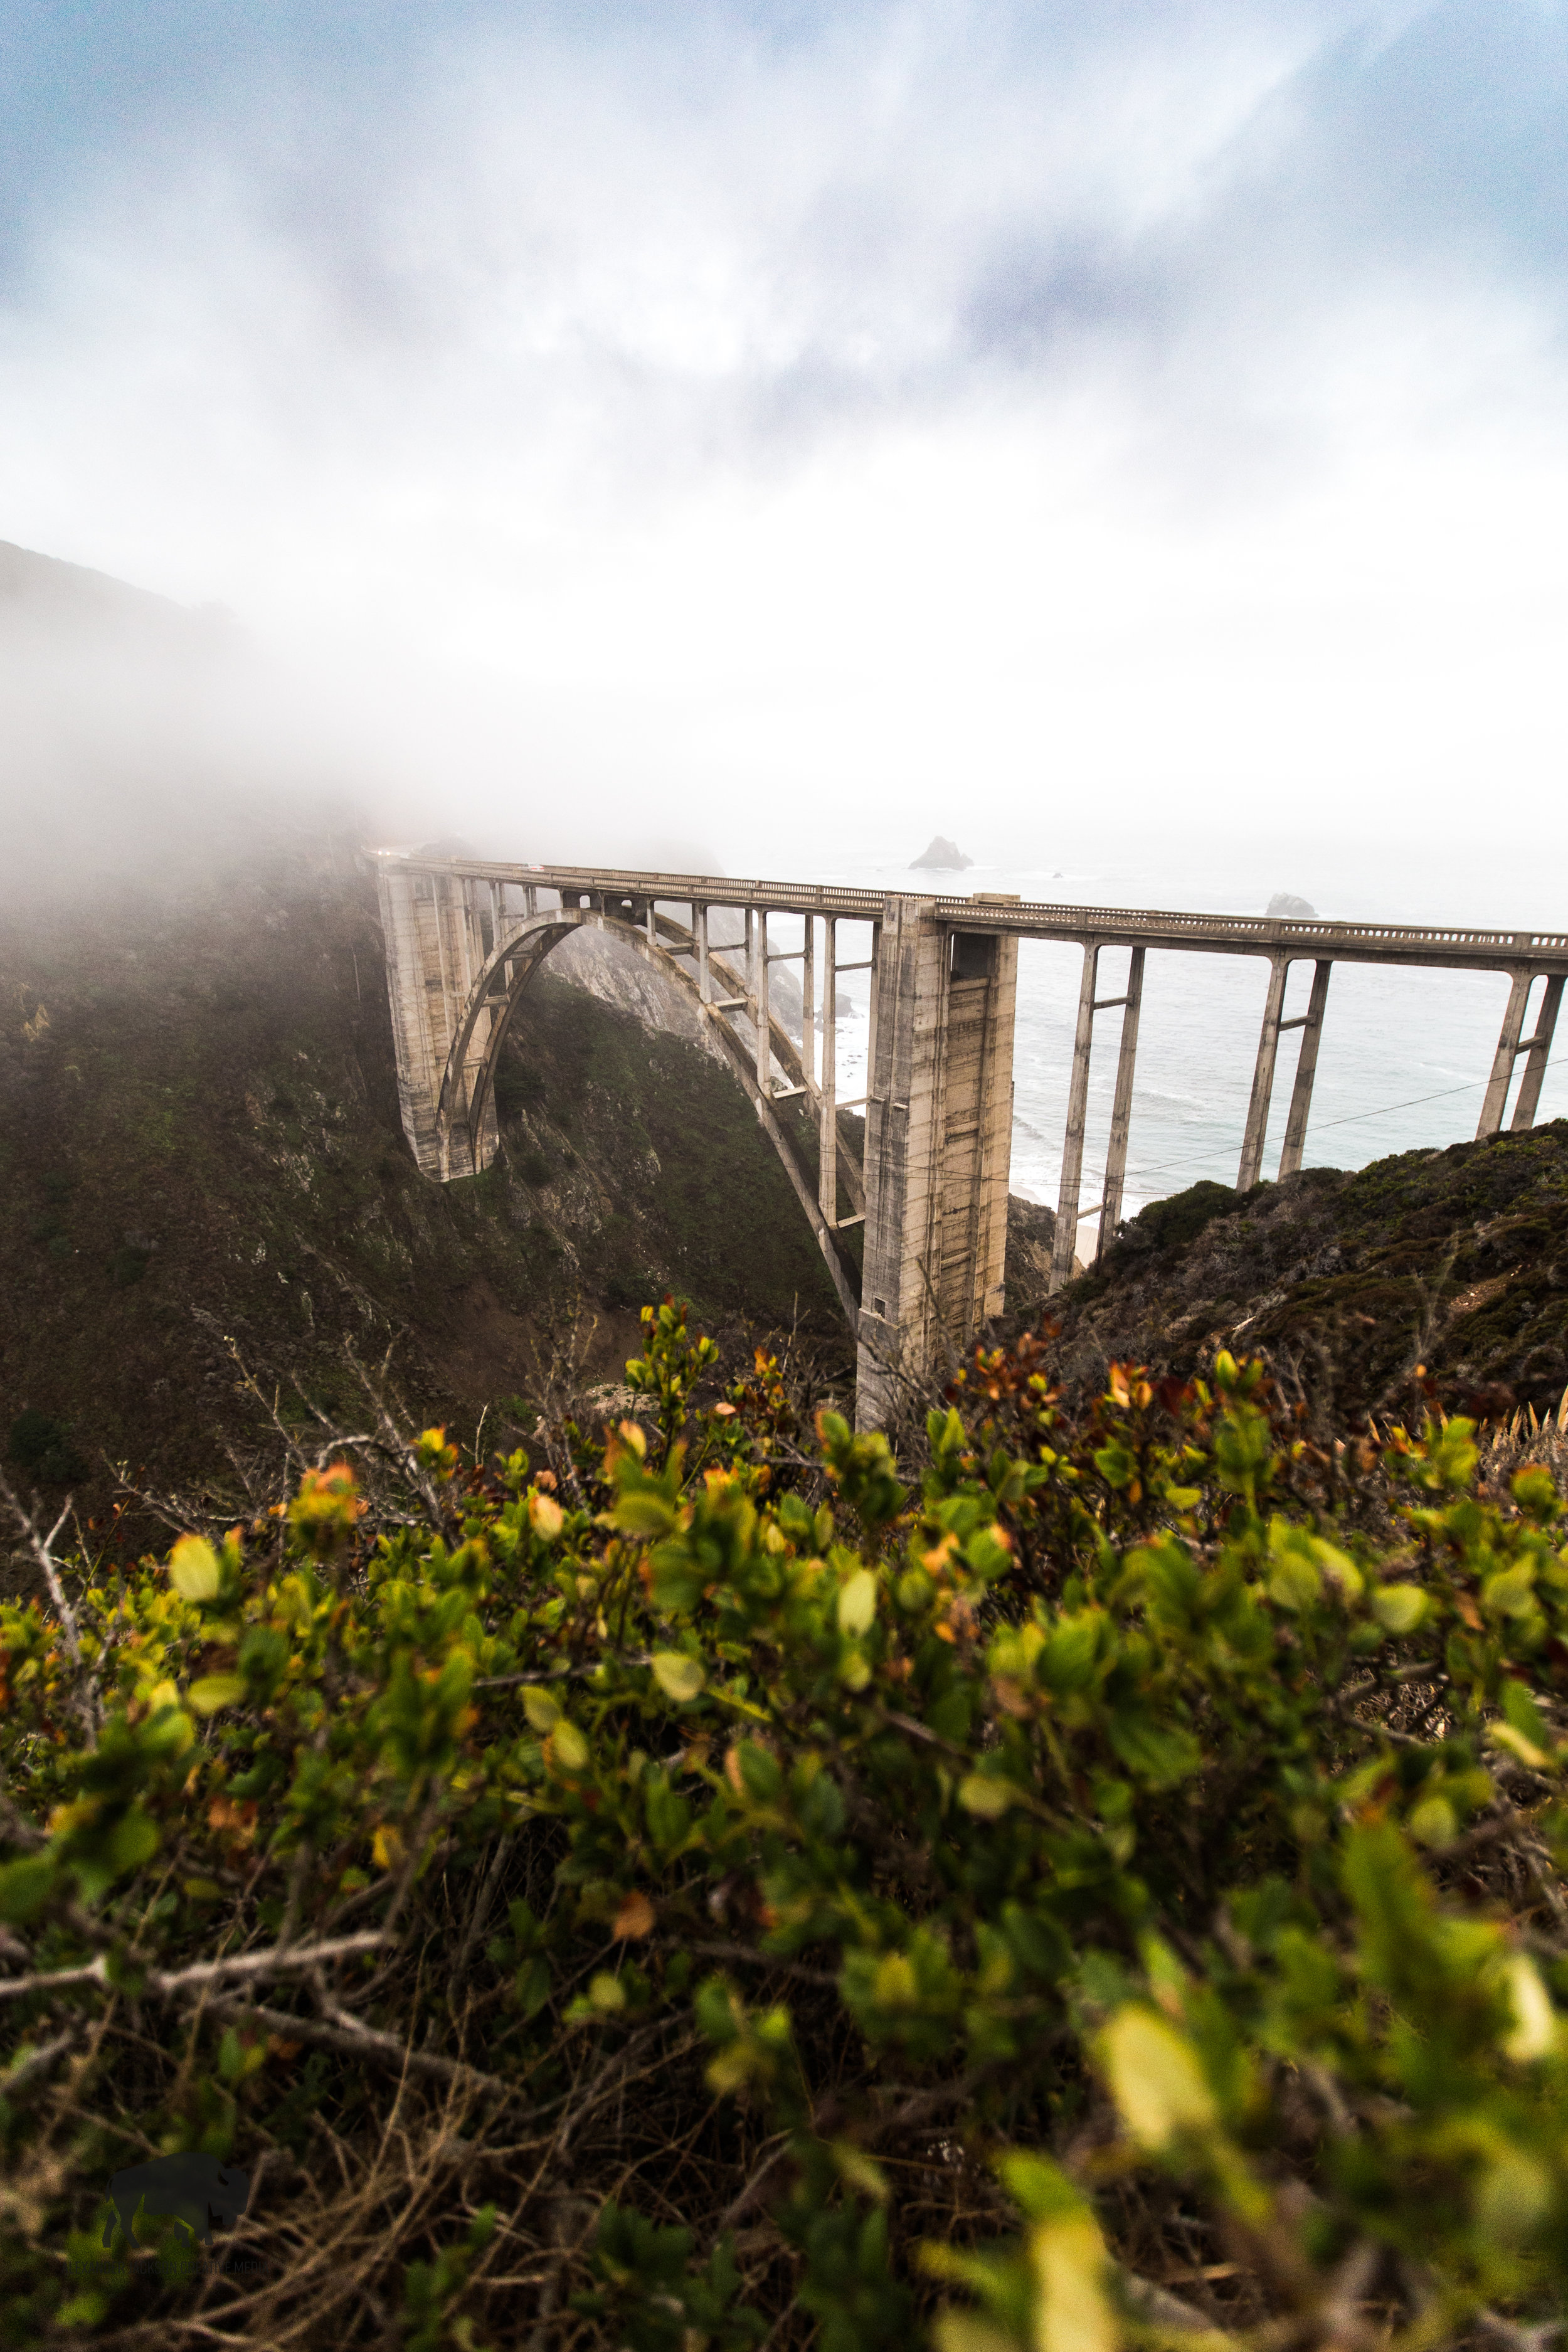 I've only crossed Bixby bridge once before and I definitely didn't take the opportunity to photograph it well, so this time I made sure to get out on both sides and catch at least a couple good shots.